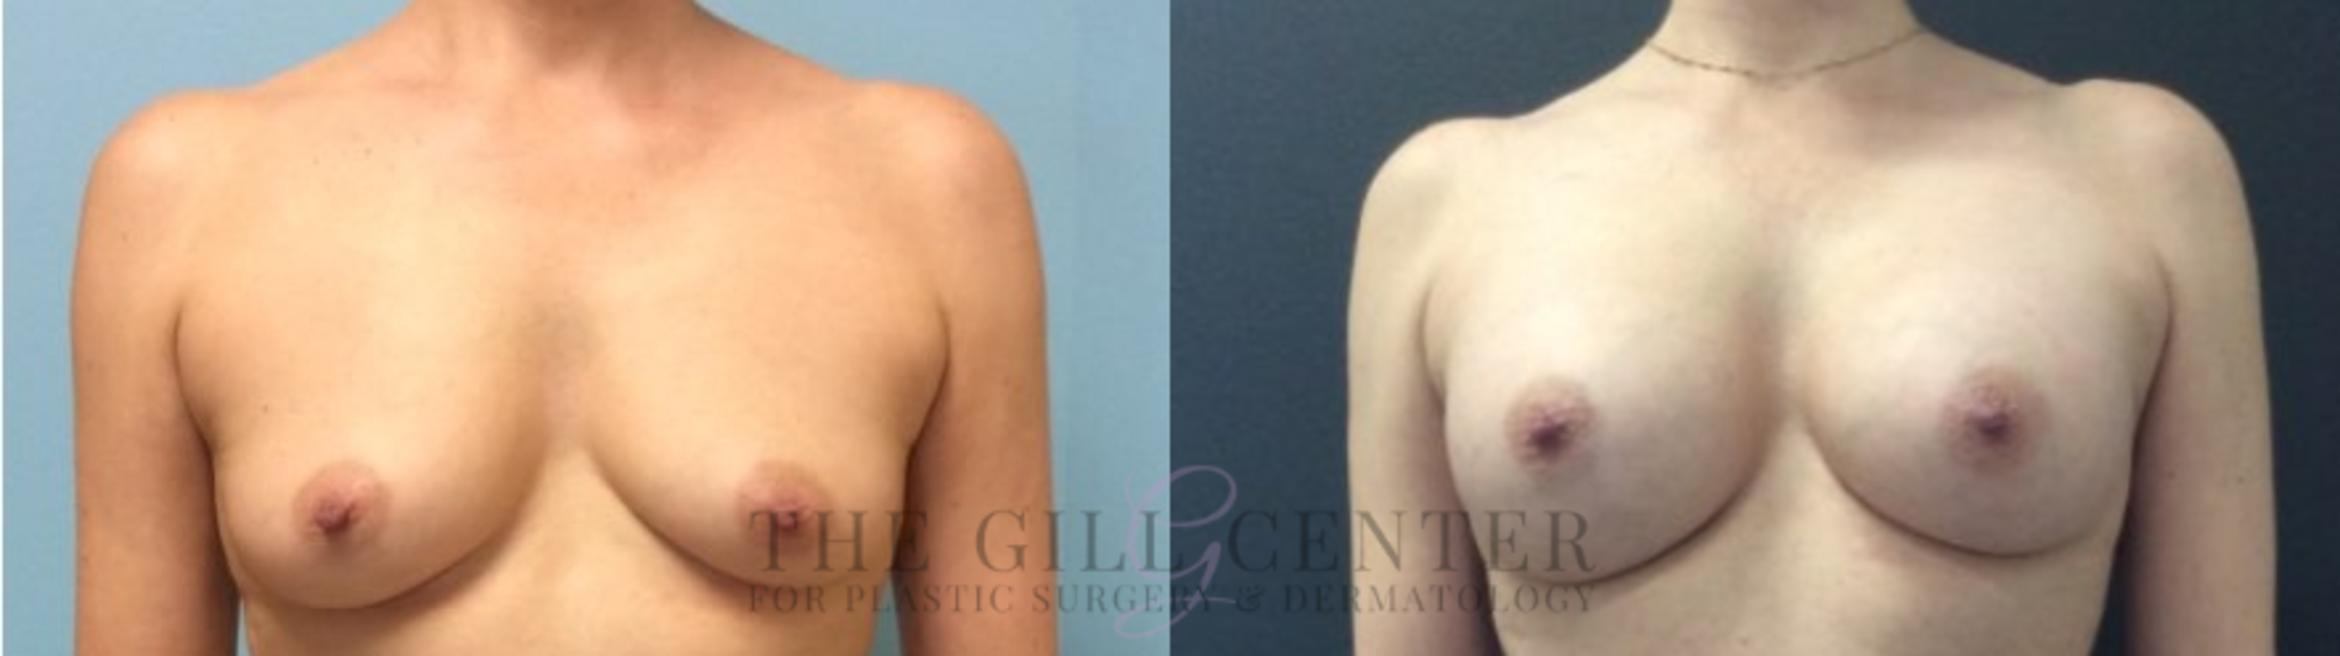 Breast Augmentation Case 437 Before & After Front | Shenandoah, TX | The Gill Center for Plastic Surgery and Dermatology